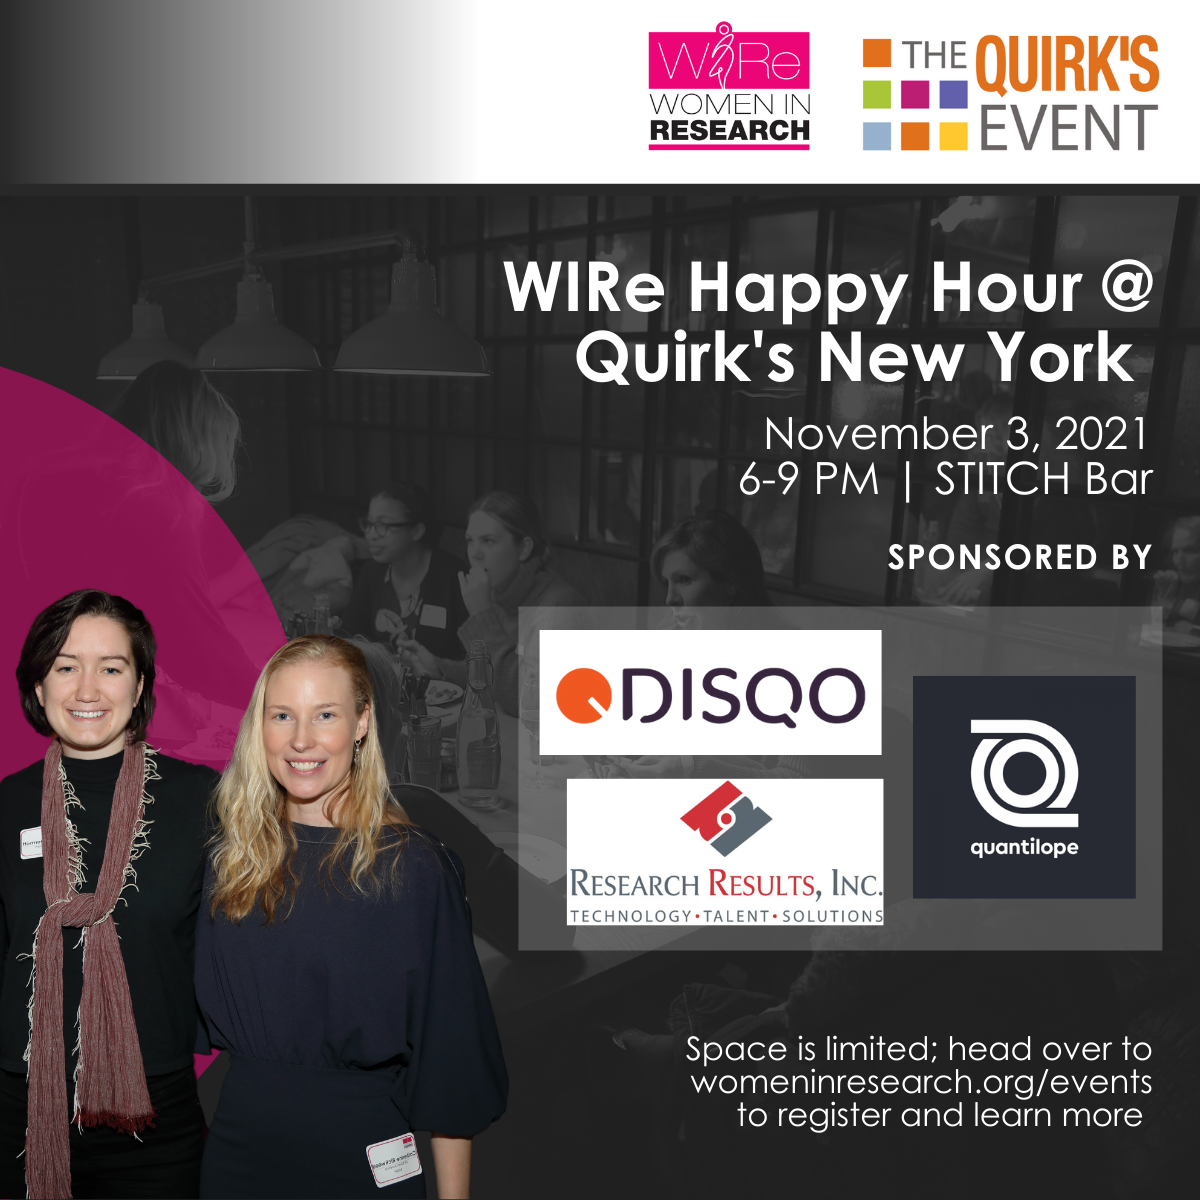 WIRe Happy Hour @ Quirk's New York